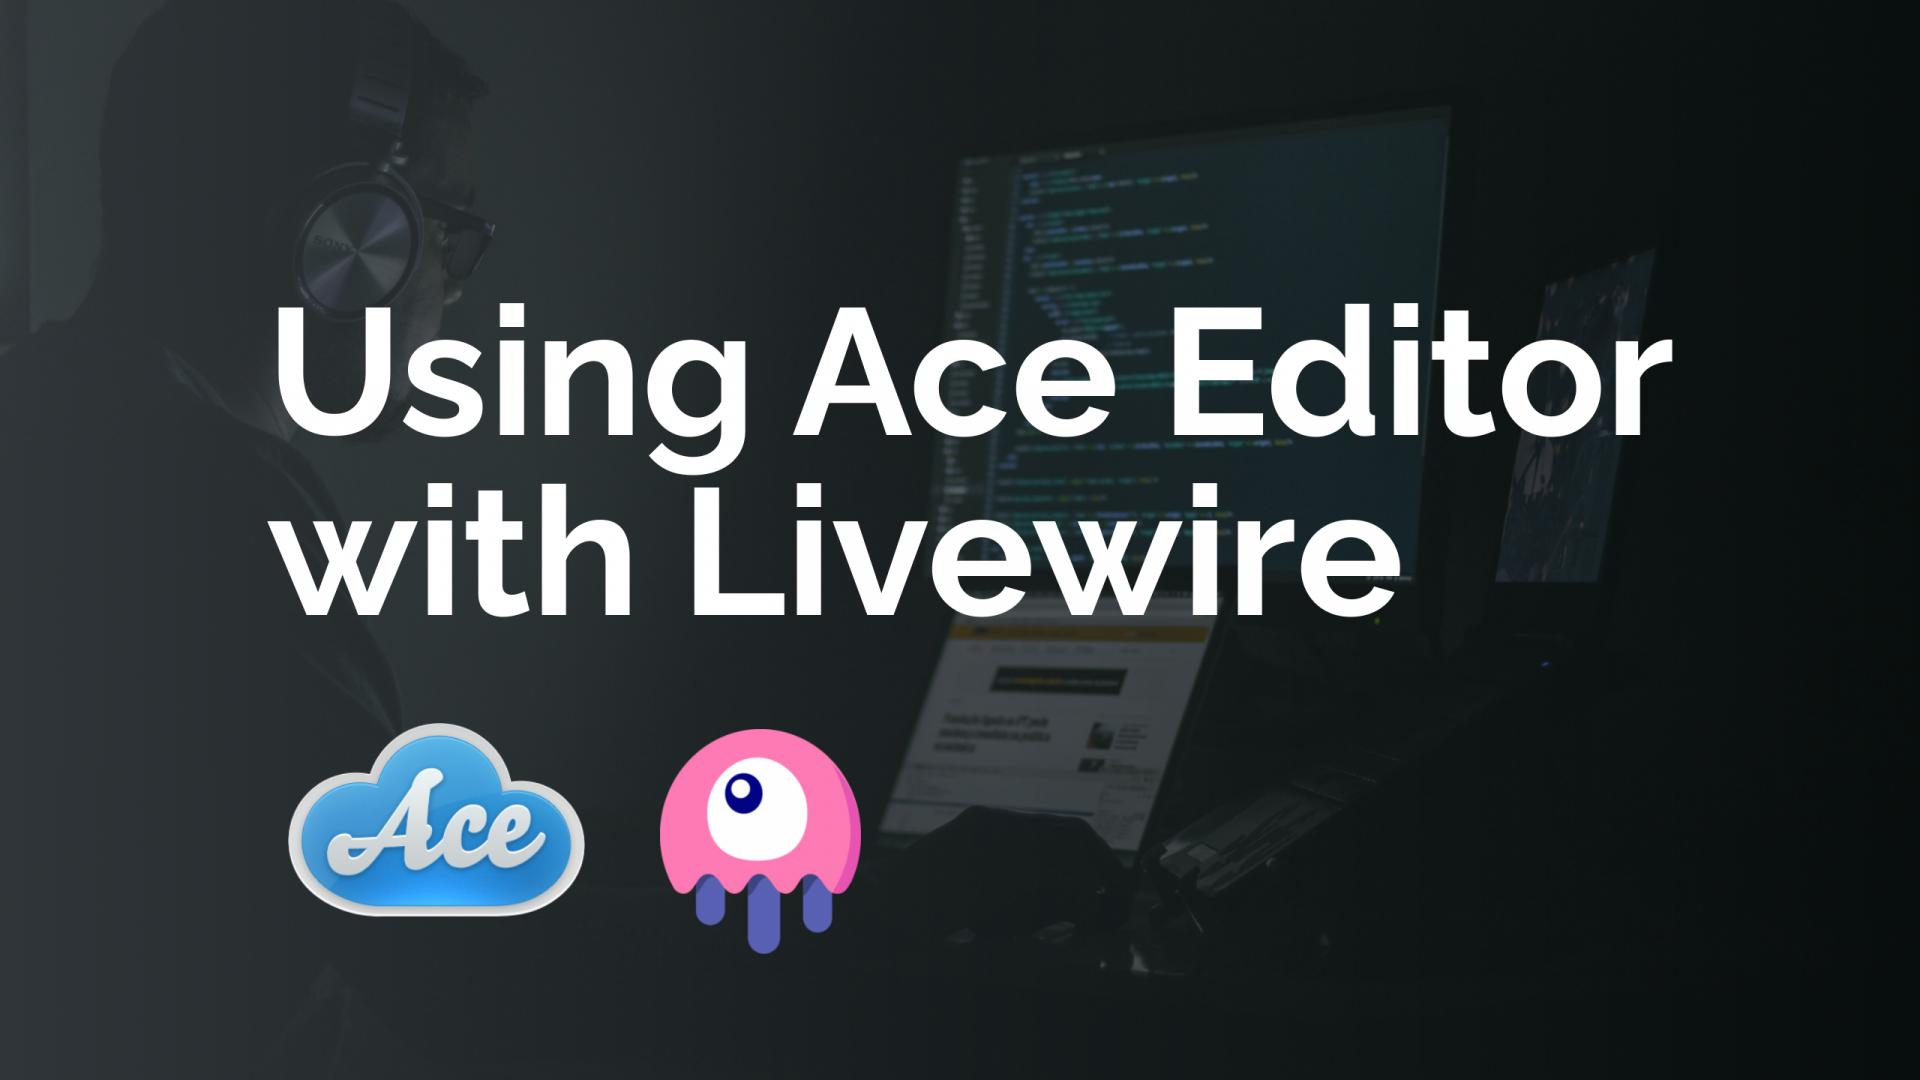 Using Ace Editor with Livewire